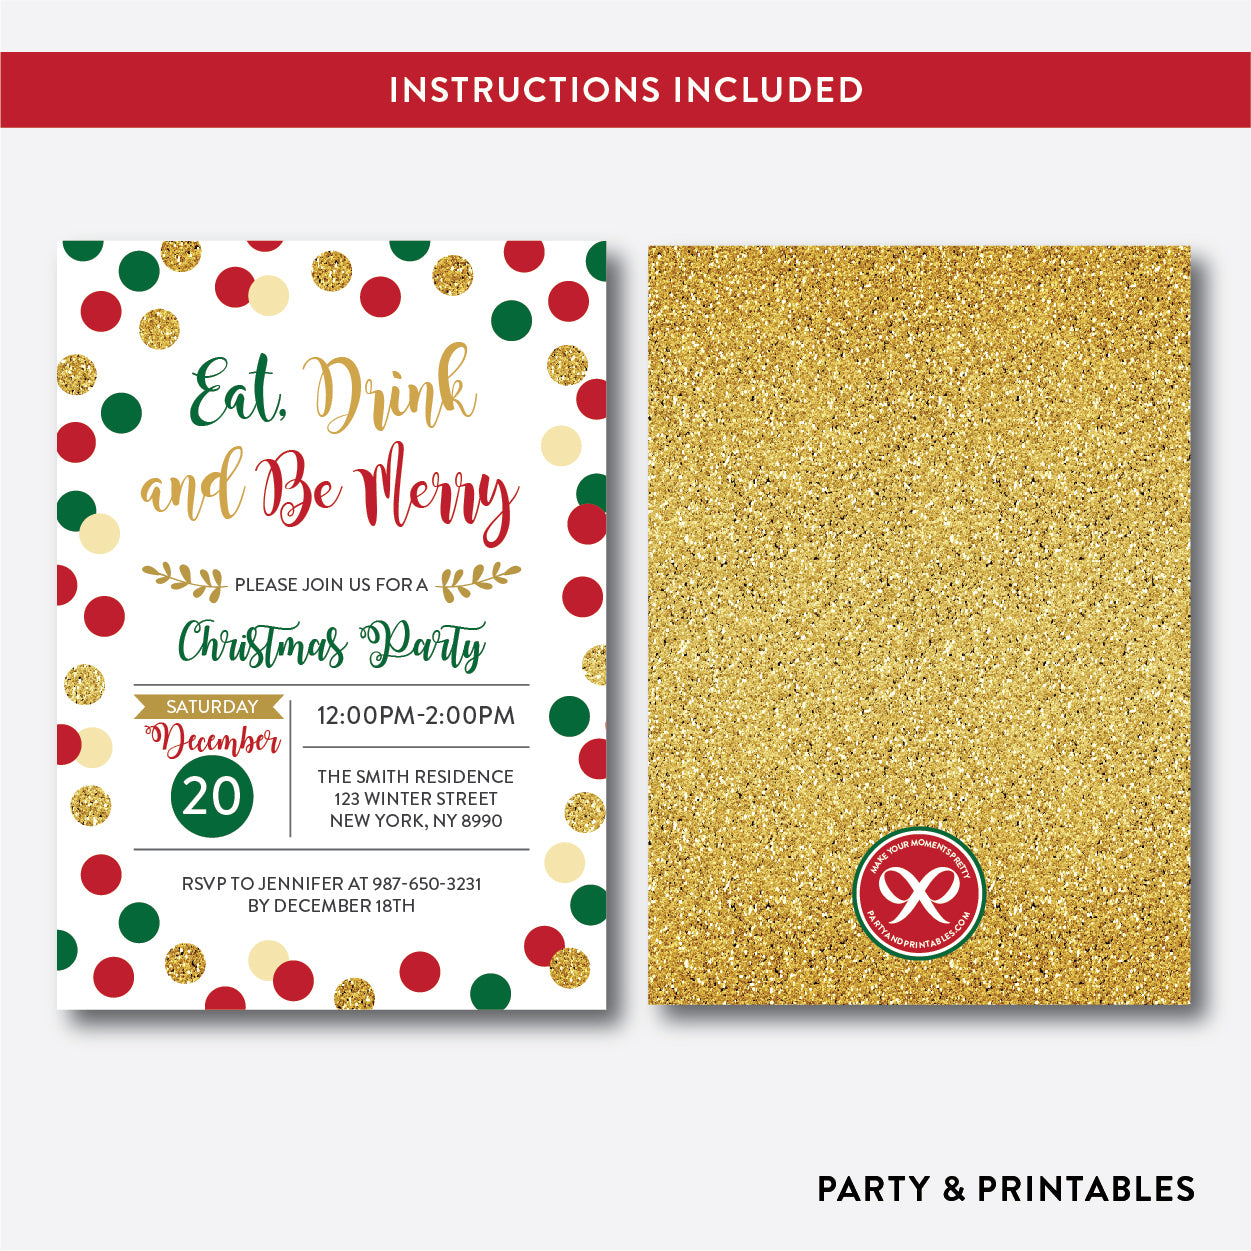 Eat, Drink and Be Merry Christmas Invitation / Editable / Instant Download (GHI.01), invitation - Party and Printables